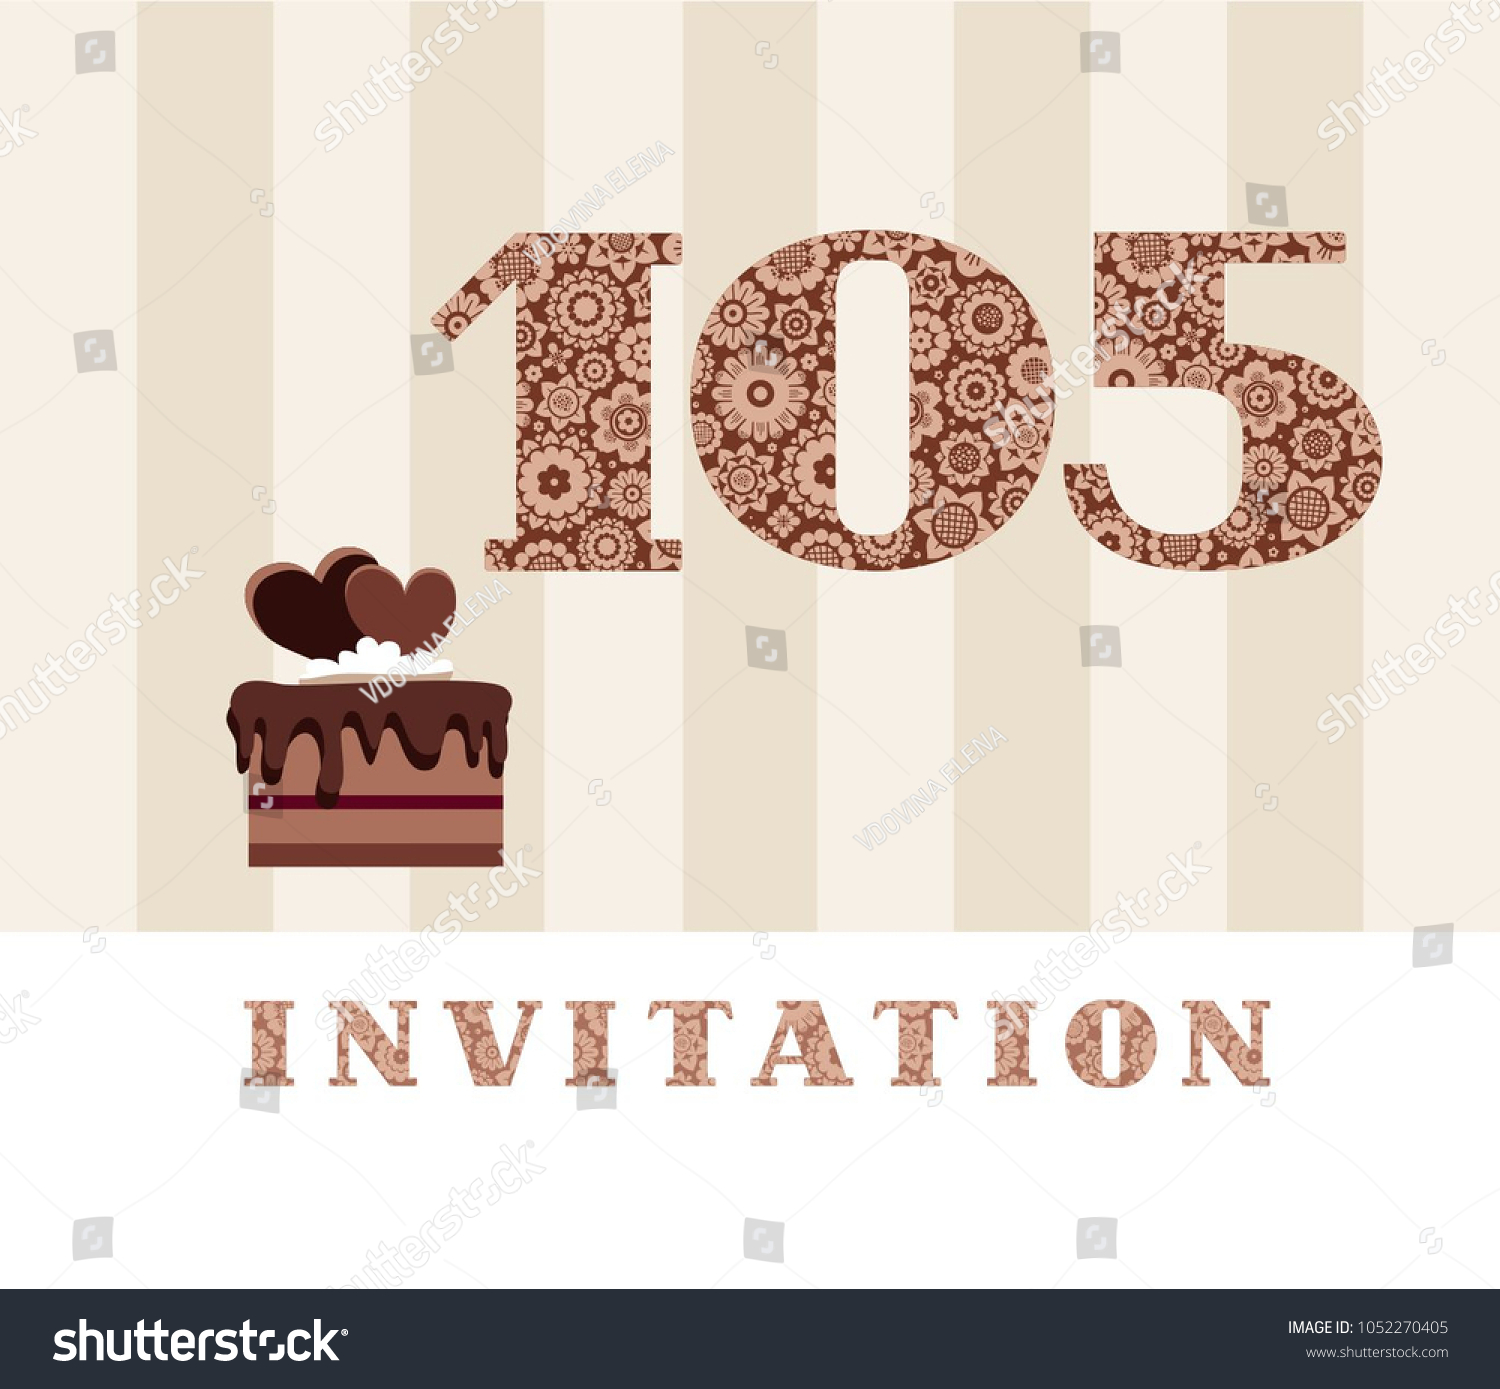 Invitation birthday party wedding anniversary color stock vector the invitation to the birthday party wedding anniversary color card chocolate cake with stopboris Images